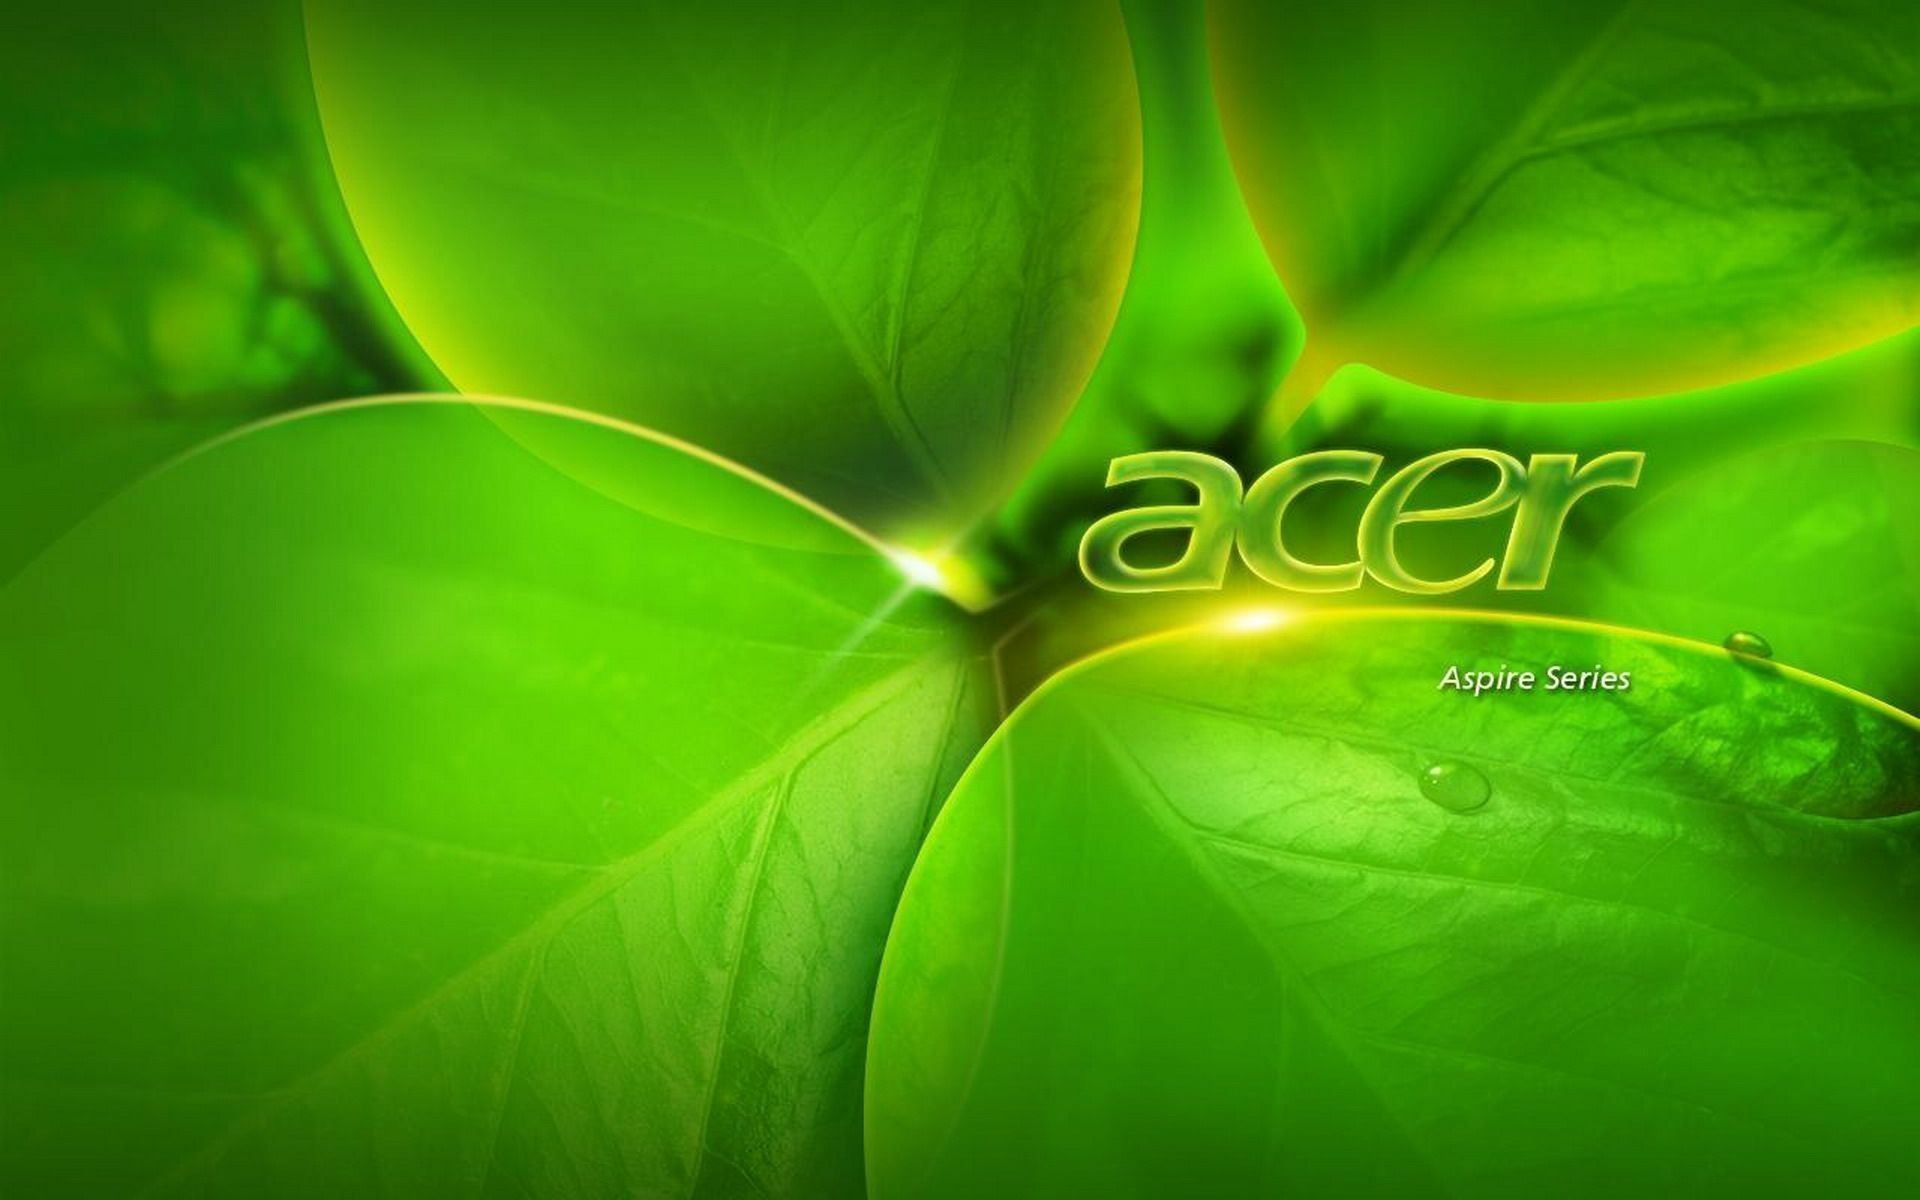 1920x1200 Acer-series-green-background